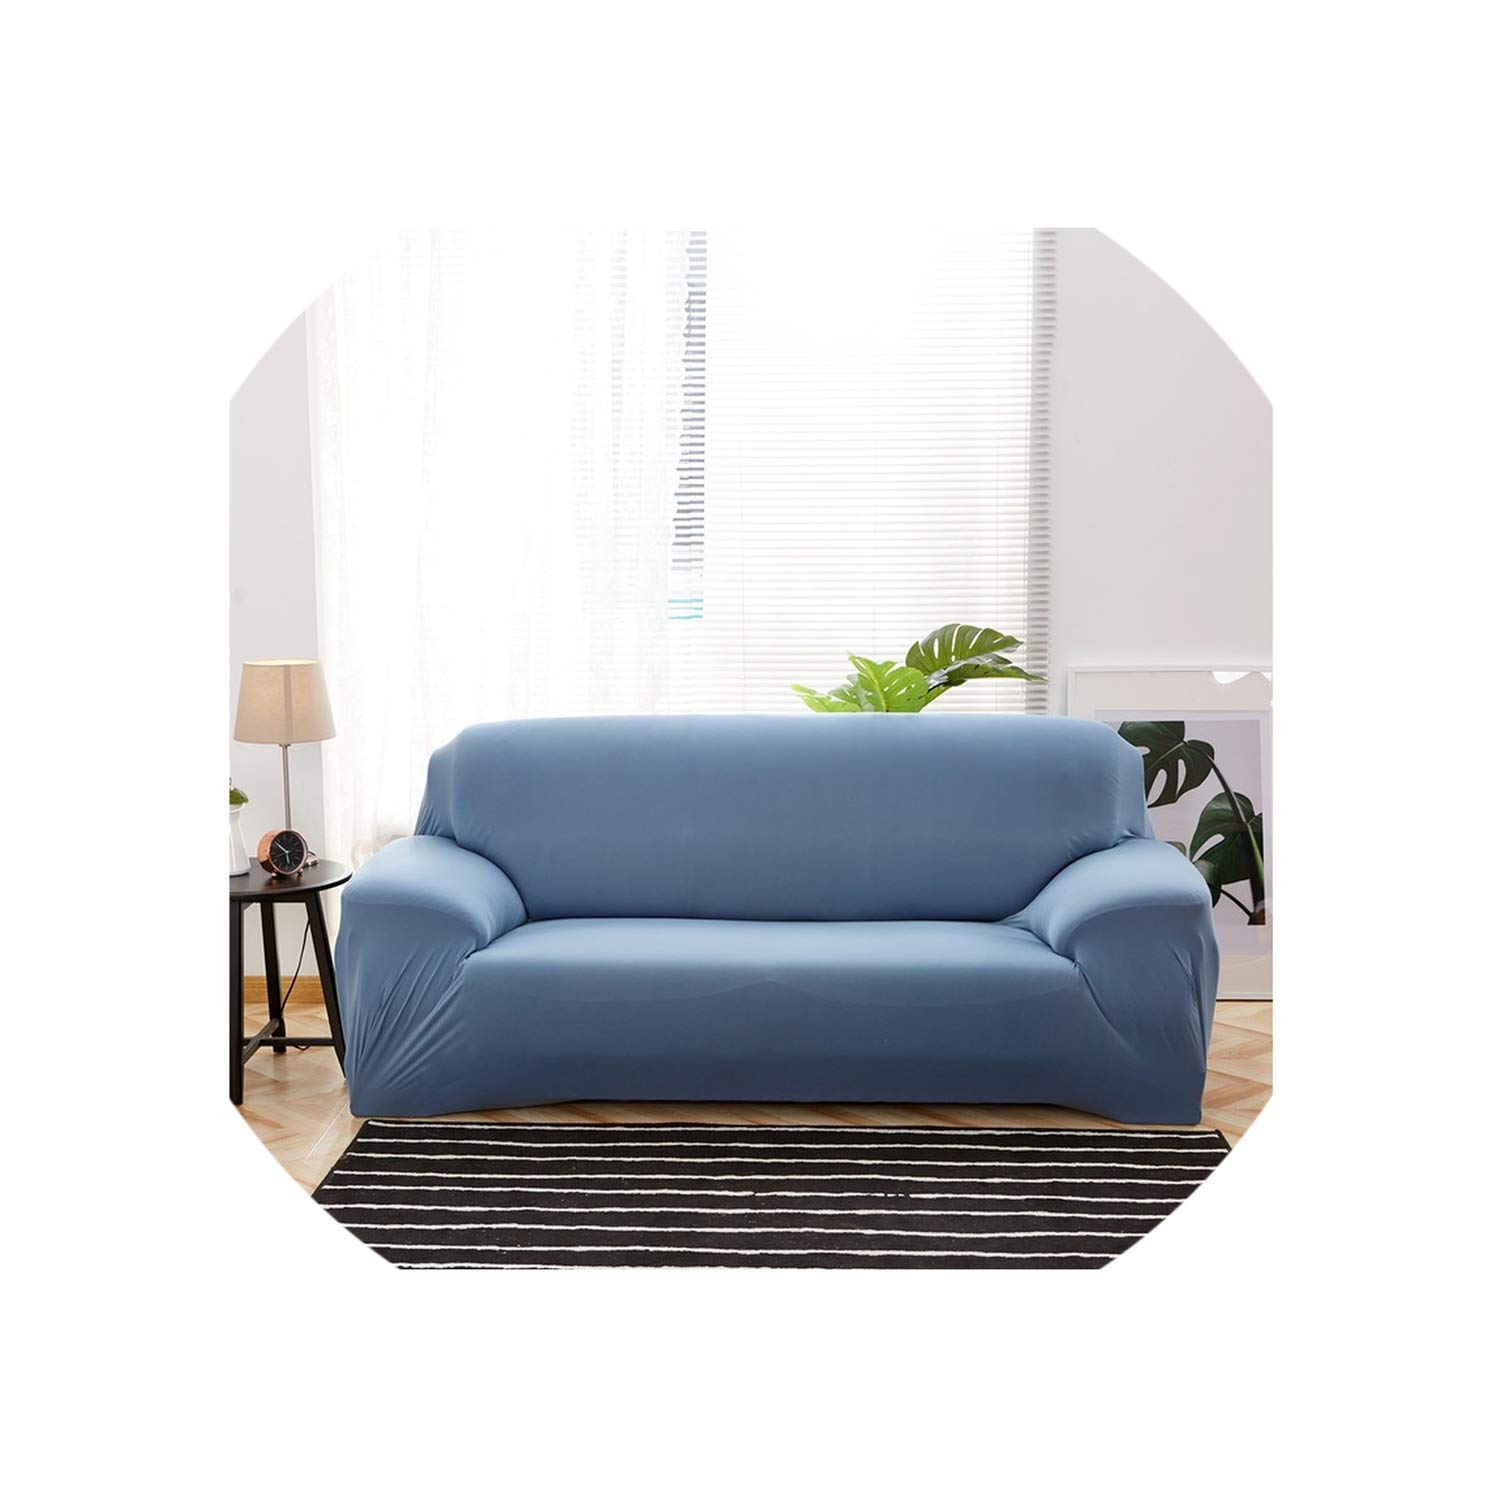 Amazon com solid color sofa cover 1 2 3 4 seater slipcovers all inclusive couch case modern elastic polyester chair furniture protector34 seat 230 300cm